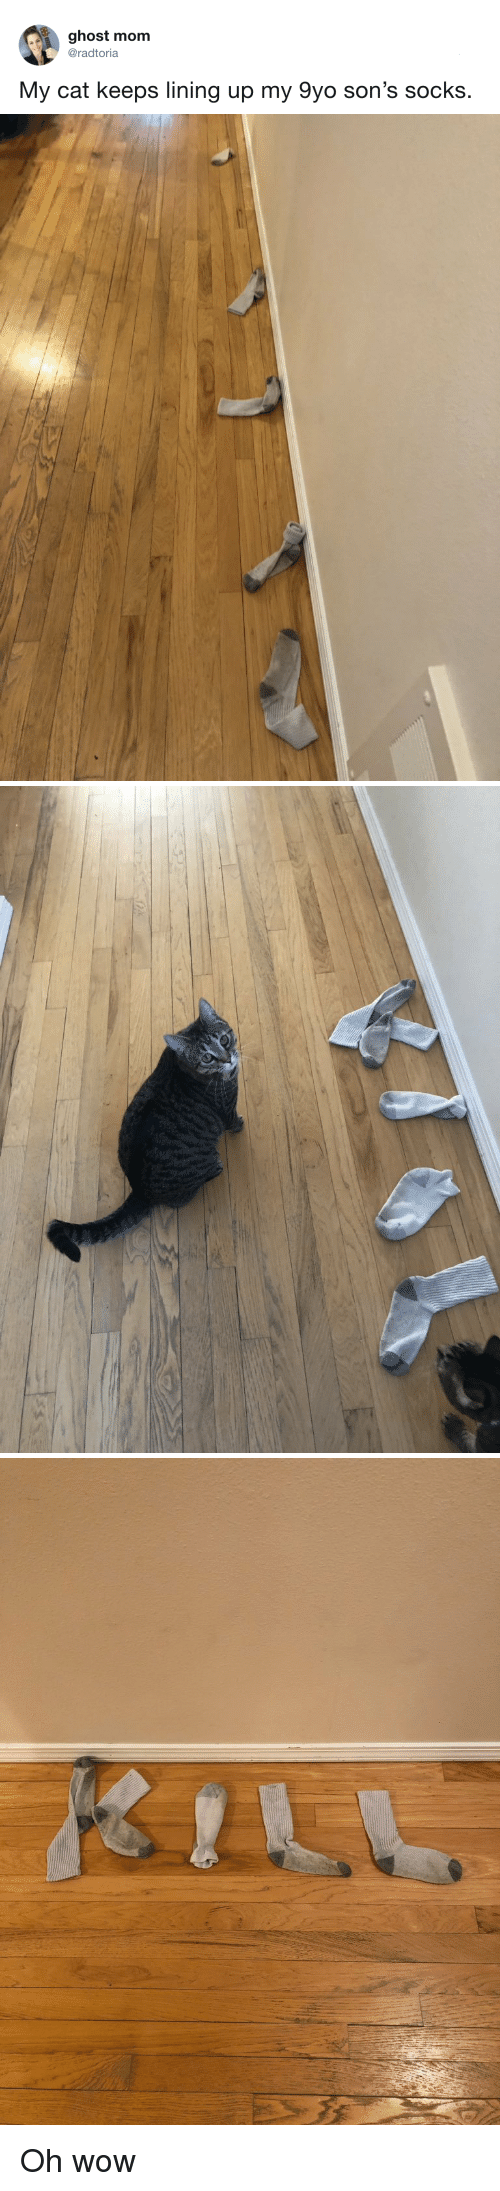 Wow, Ghost, and Mom: ghost mom  @radtoria  My cat keeps lining up my 9yo son's socks. Oh wow